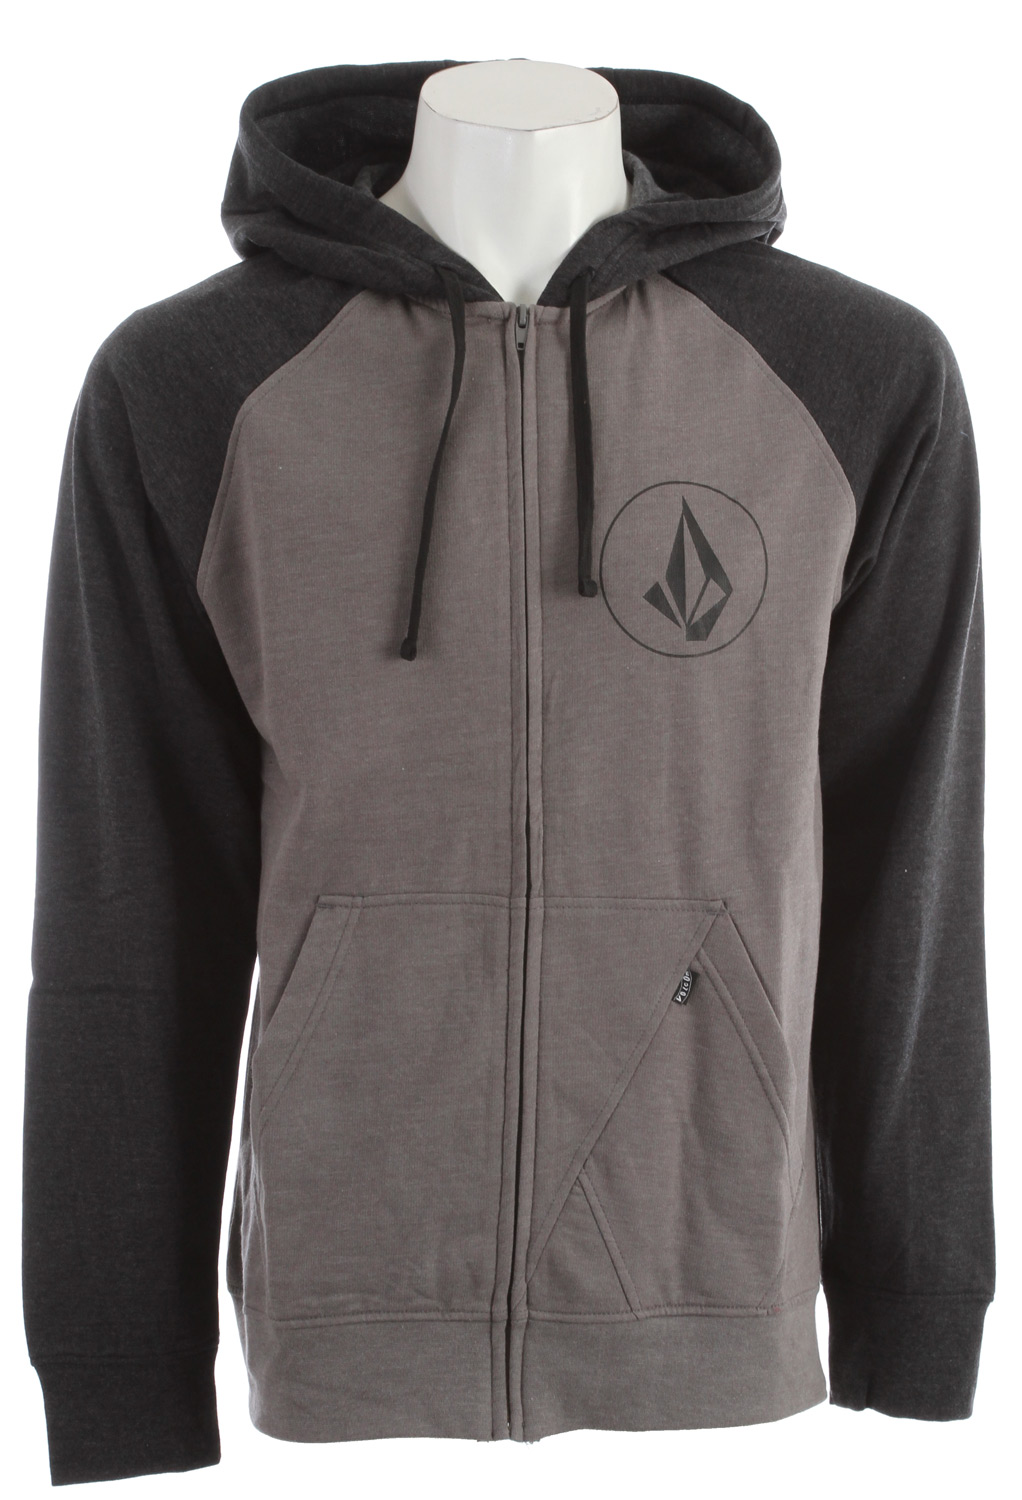 Surf Key Features of the Volcom Half Stone Icon Hoodie: Heather Slim zip hood Left chest screen print Contrast hood and raglan sleeves 2-Tone drawcords Stone panel pocket detail Pre-Shrunk Slim Fit 55% Cotton / 45% Polyester Heather fleece, 220-230gm - $29.95